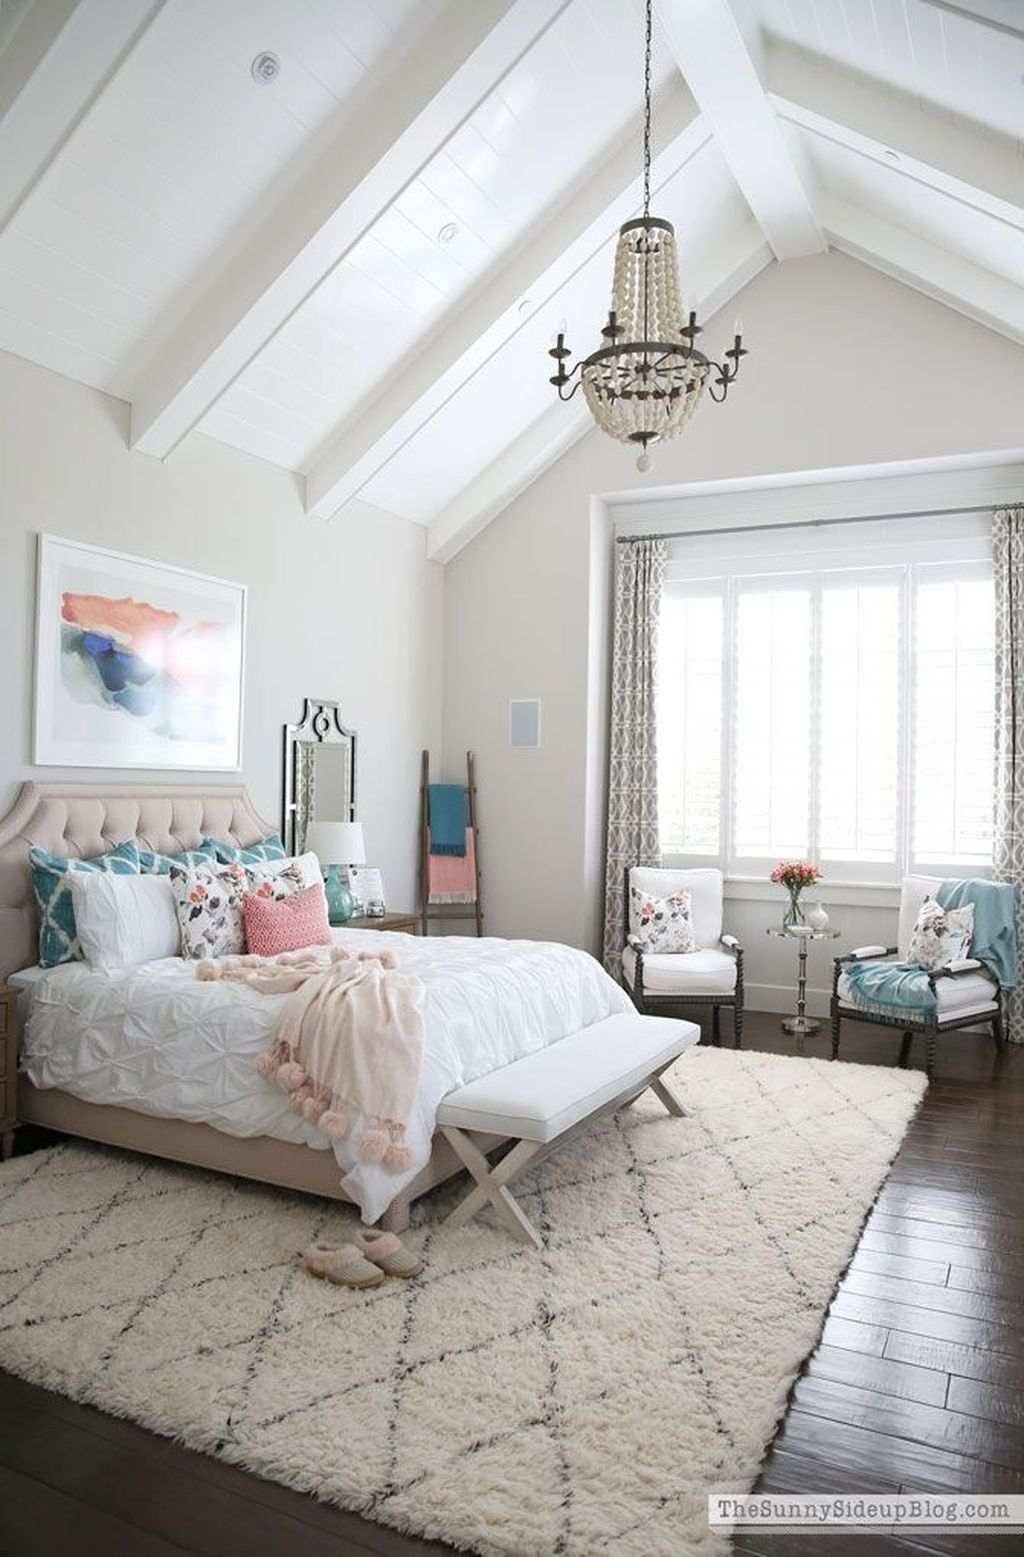 Unordinary Ceiling Design Ideas For Your Bedroom11